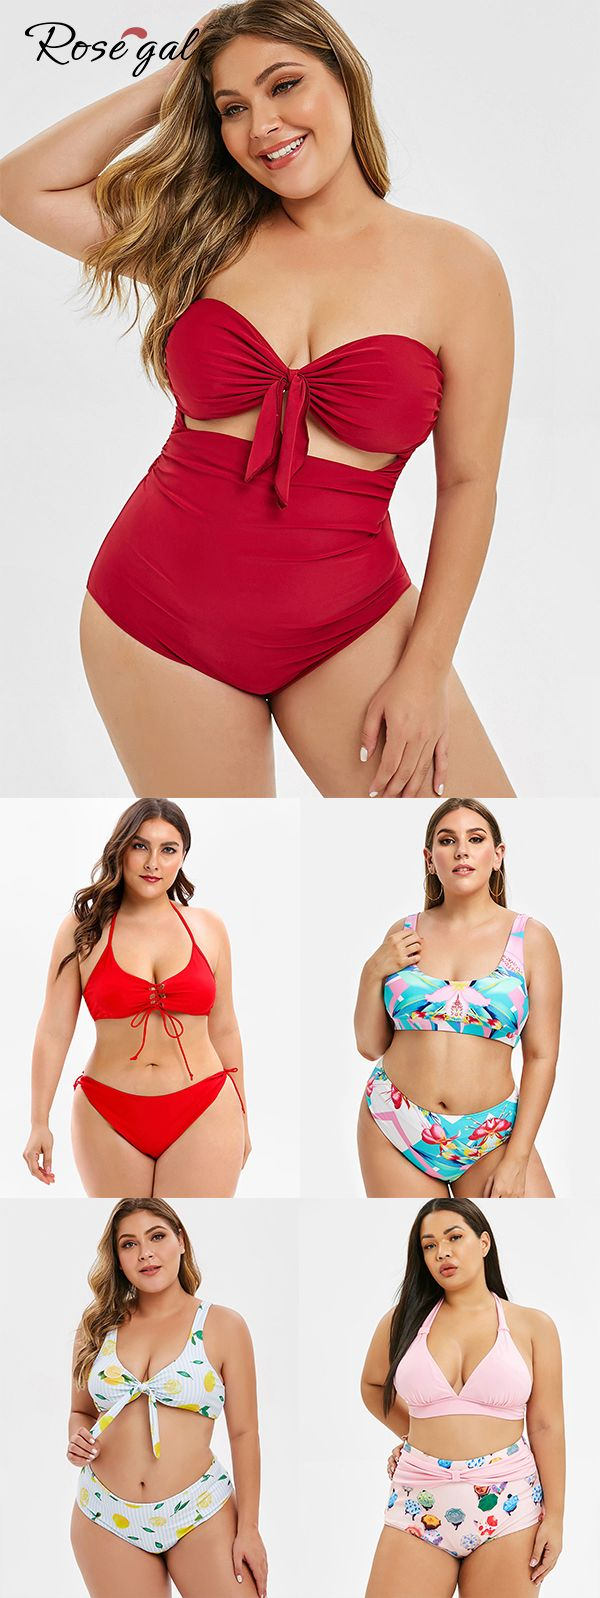 Rosegal plus size tankini new arrivals swimsuit fashion curvy girl ideas